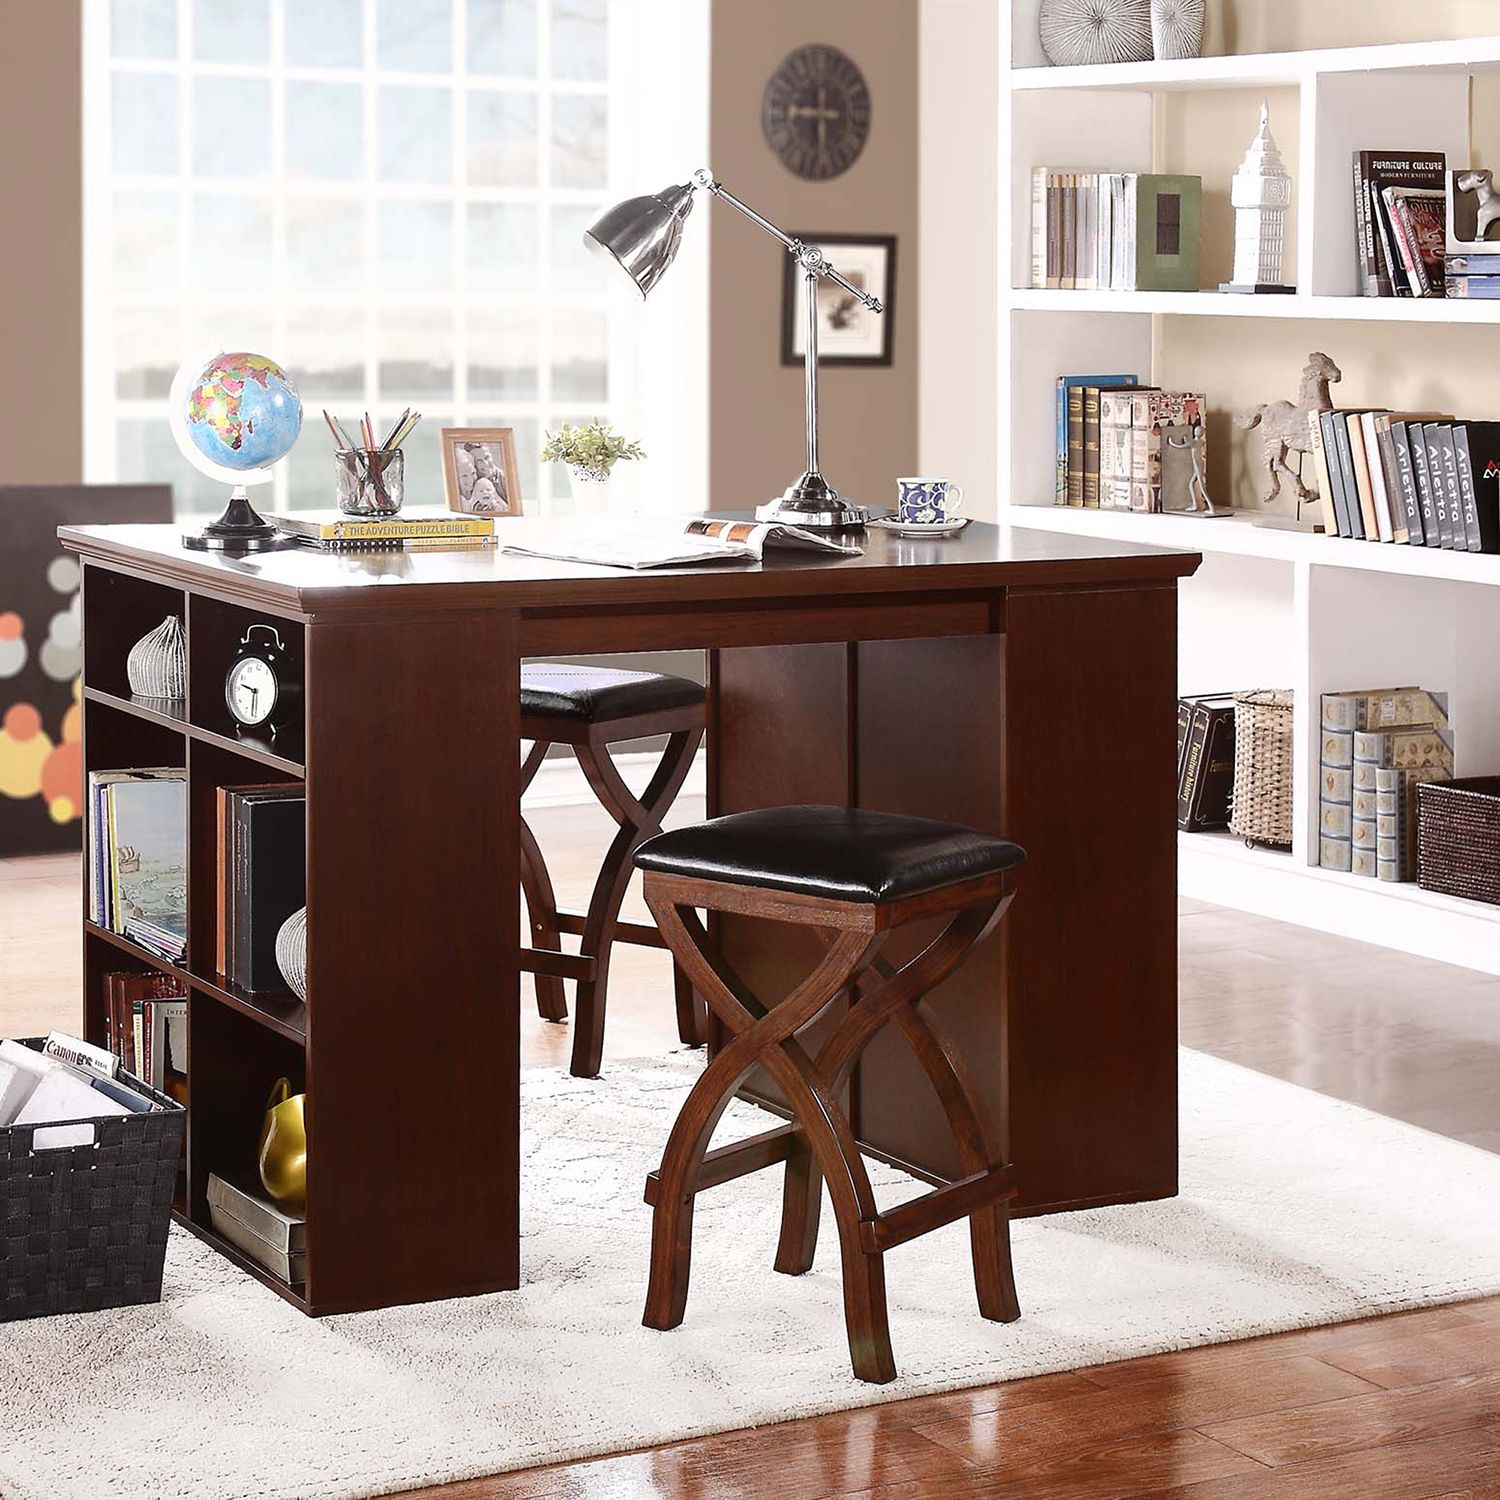 26++ Counter height craft table on wheels ideas